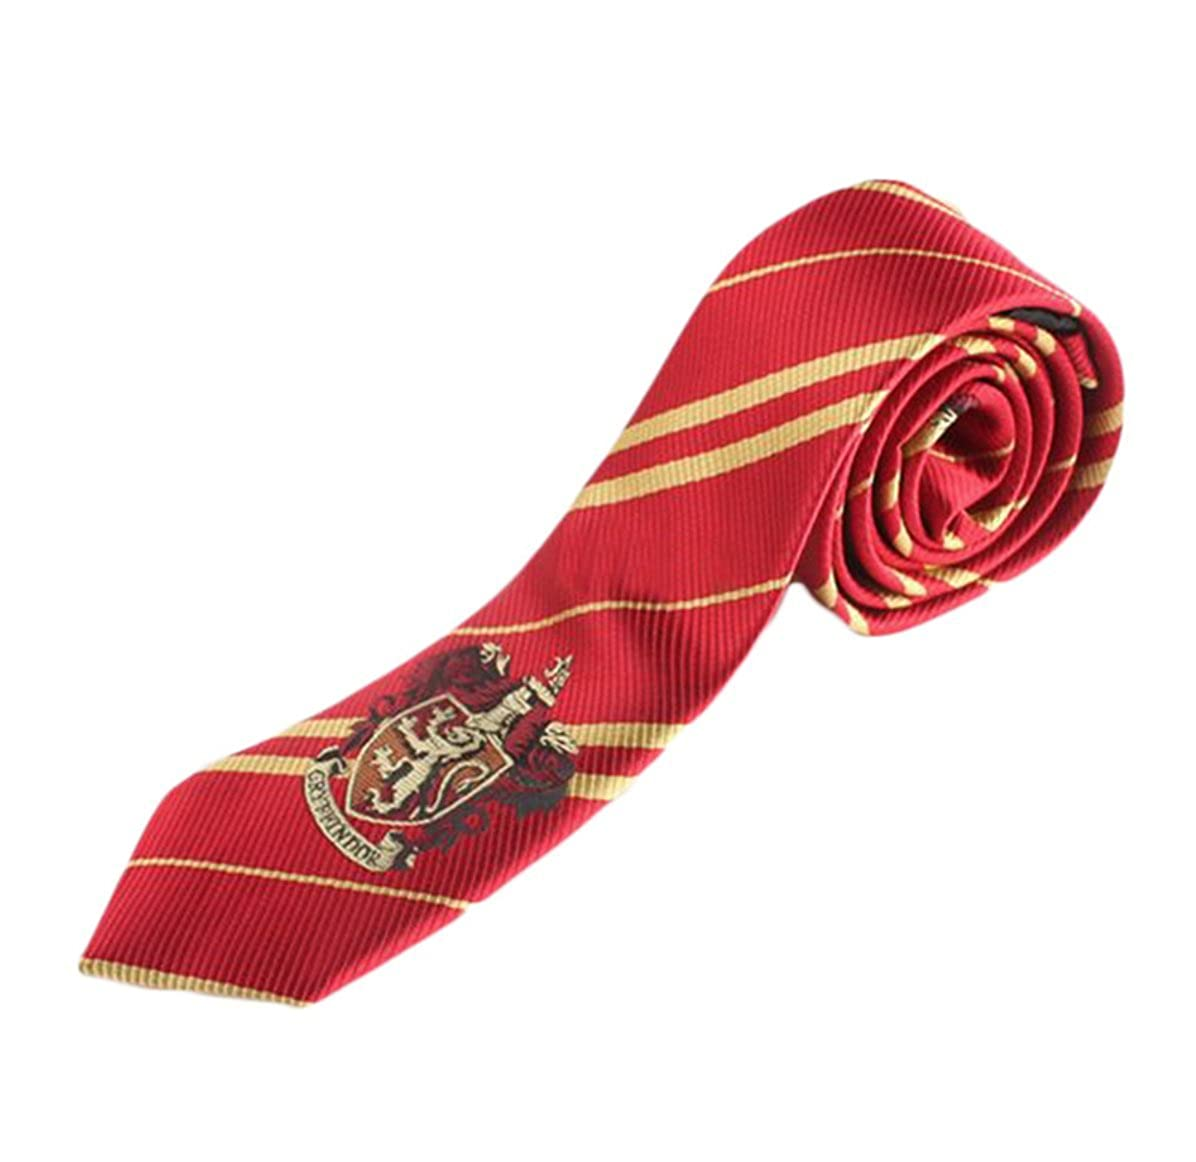 Harry Potter Gryffindor/Slytherin/Hufflepuff/Ravenclaw Tie